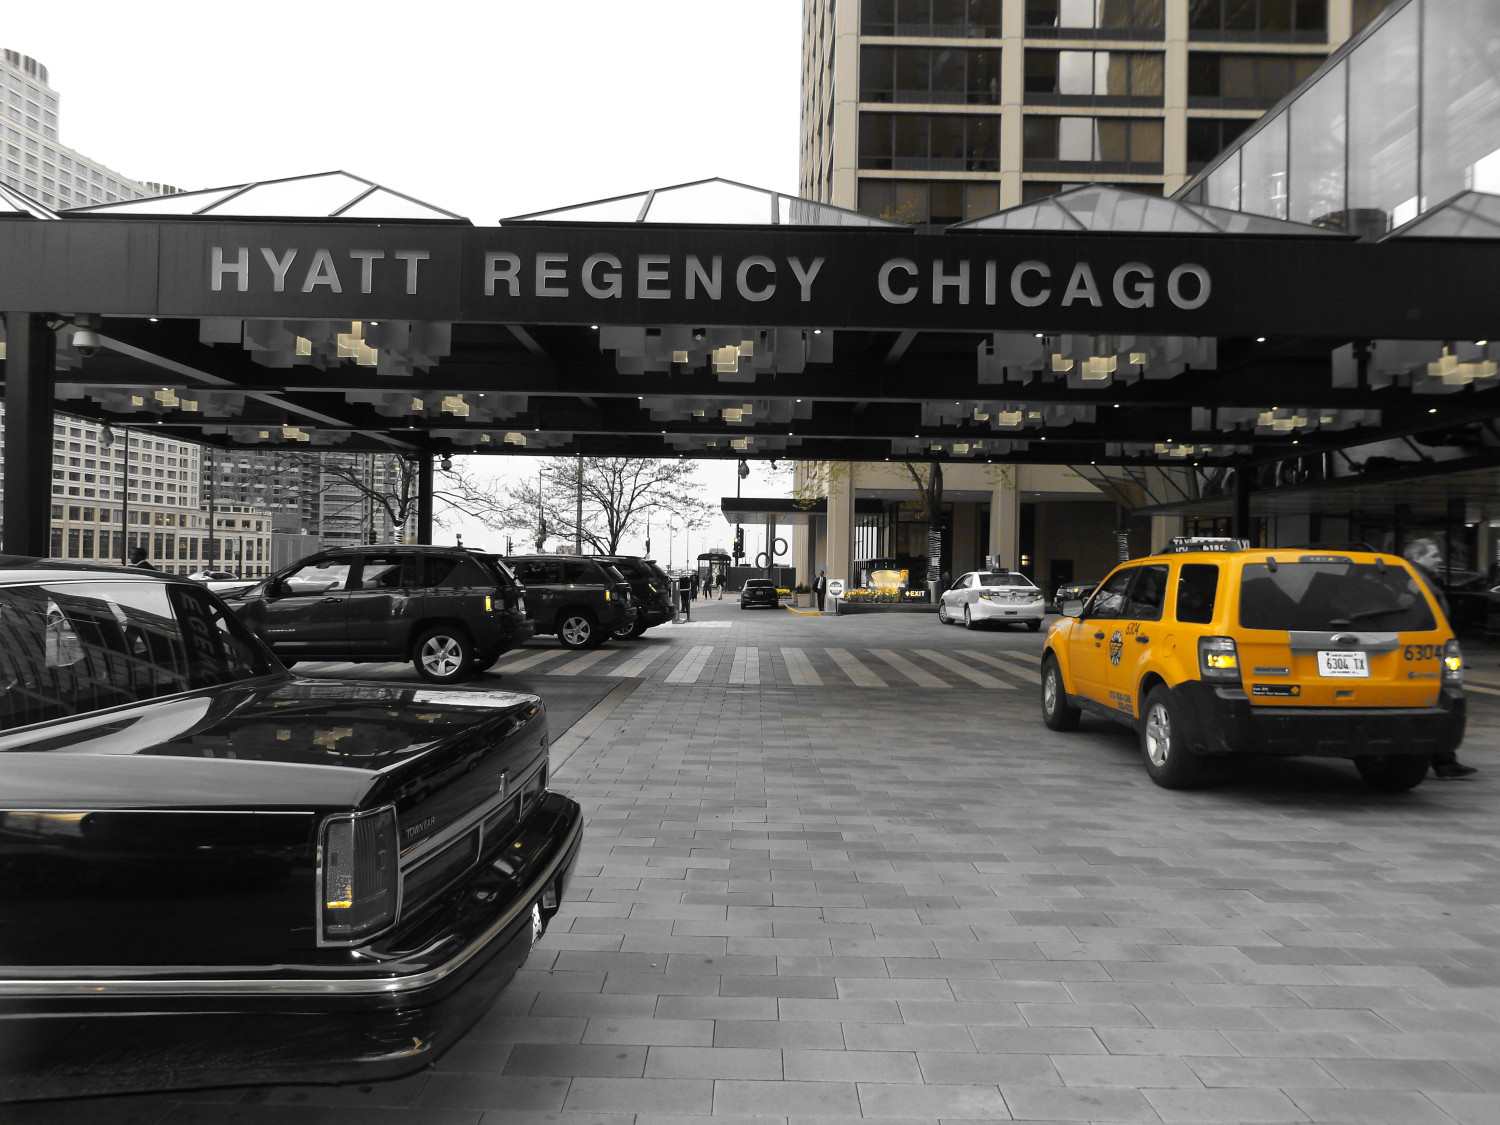 Hyatt Regency, Chicago, IL, extrusion technology seminar, ET'16